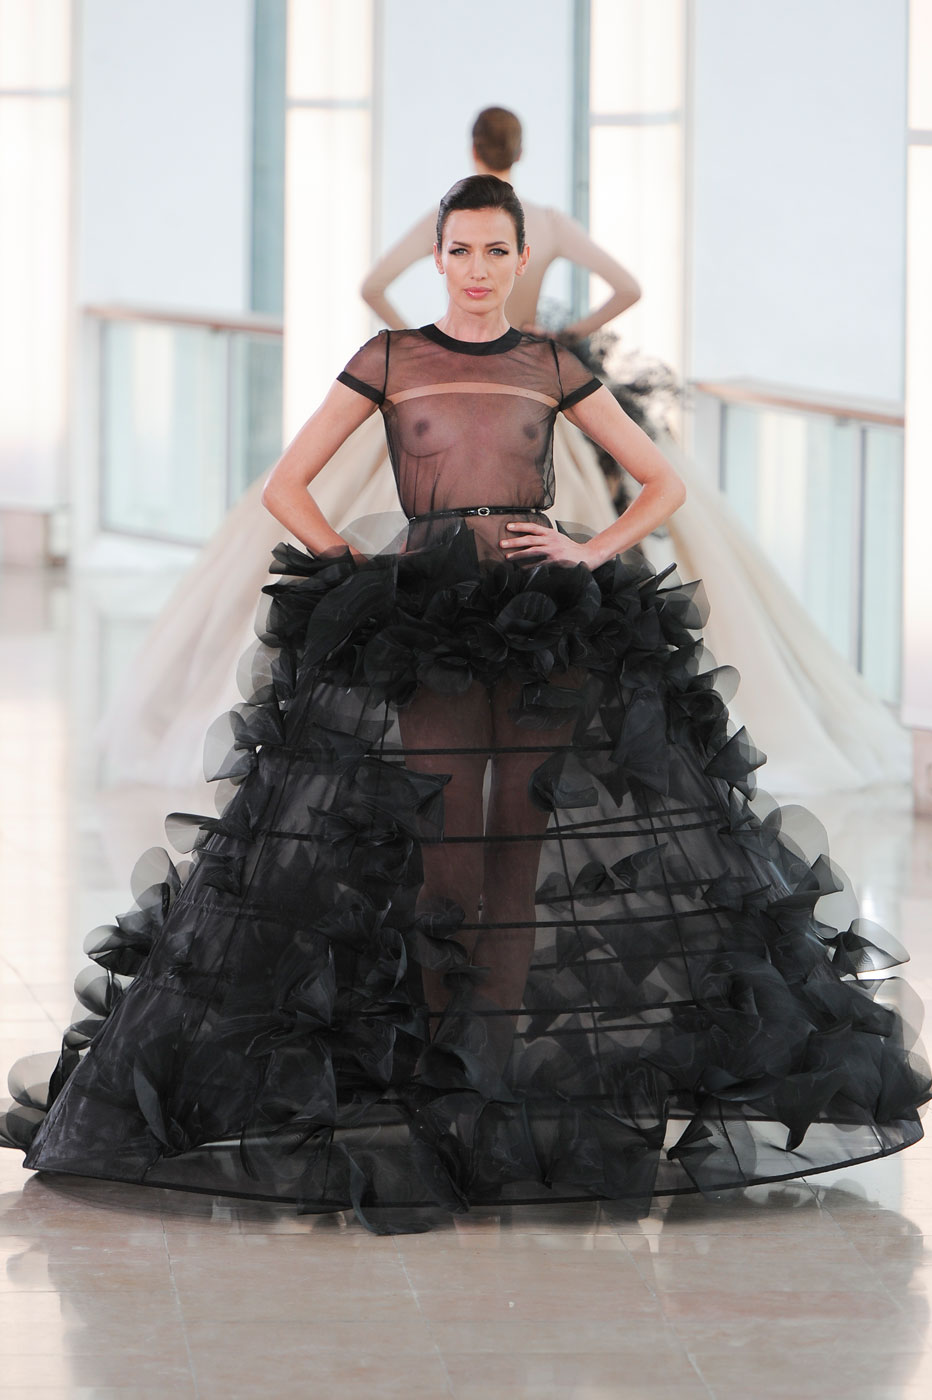 stephane-rolland-fashion-runway-show-haute-couture-paris-spring-2015-the-impression-63